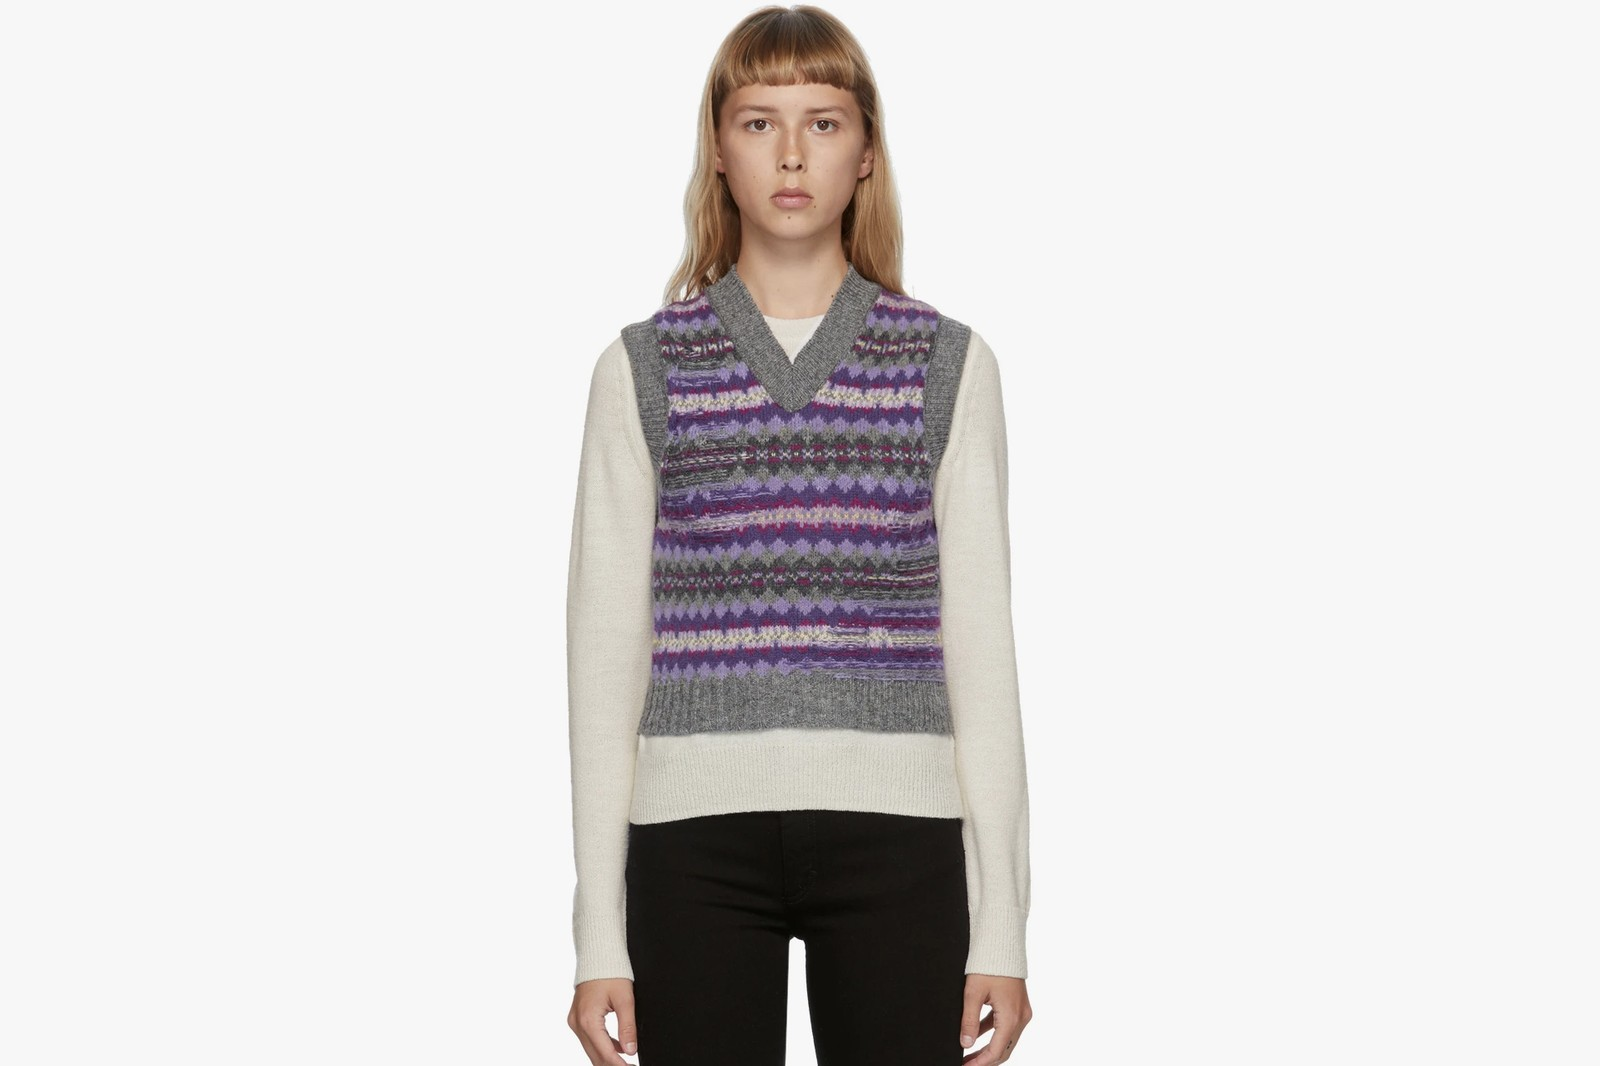 Where to buy best Sweater Vest Trend Acne Studios Miu Miu COS Marc Jacobs Knit Fall Winter